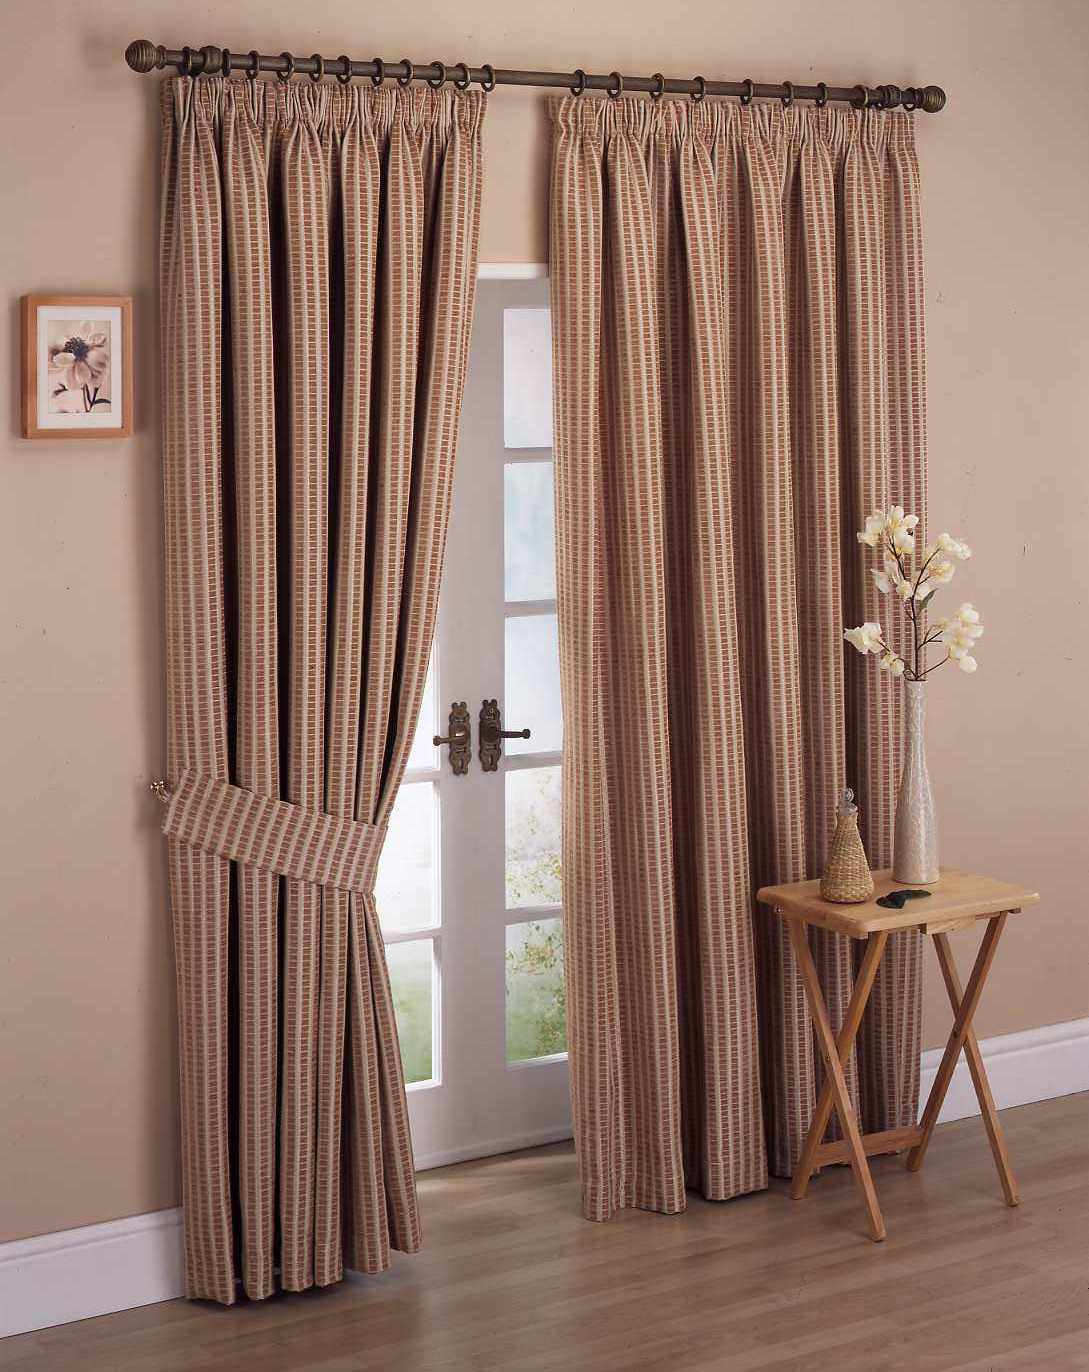 Image of: curtain designs and patterns